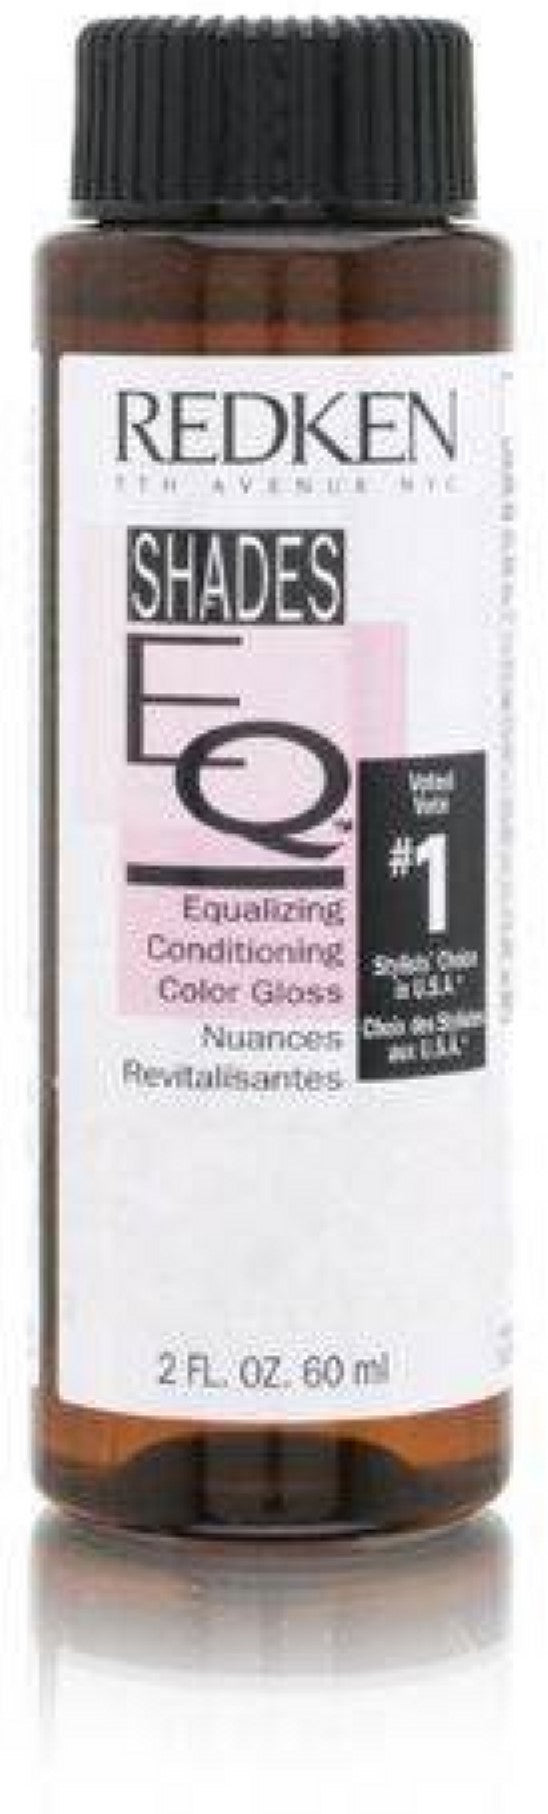 Redken Shades EQ Color Gloss Hair Color